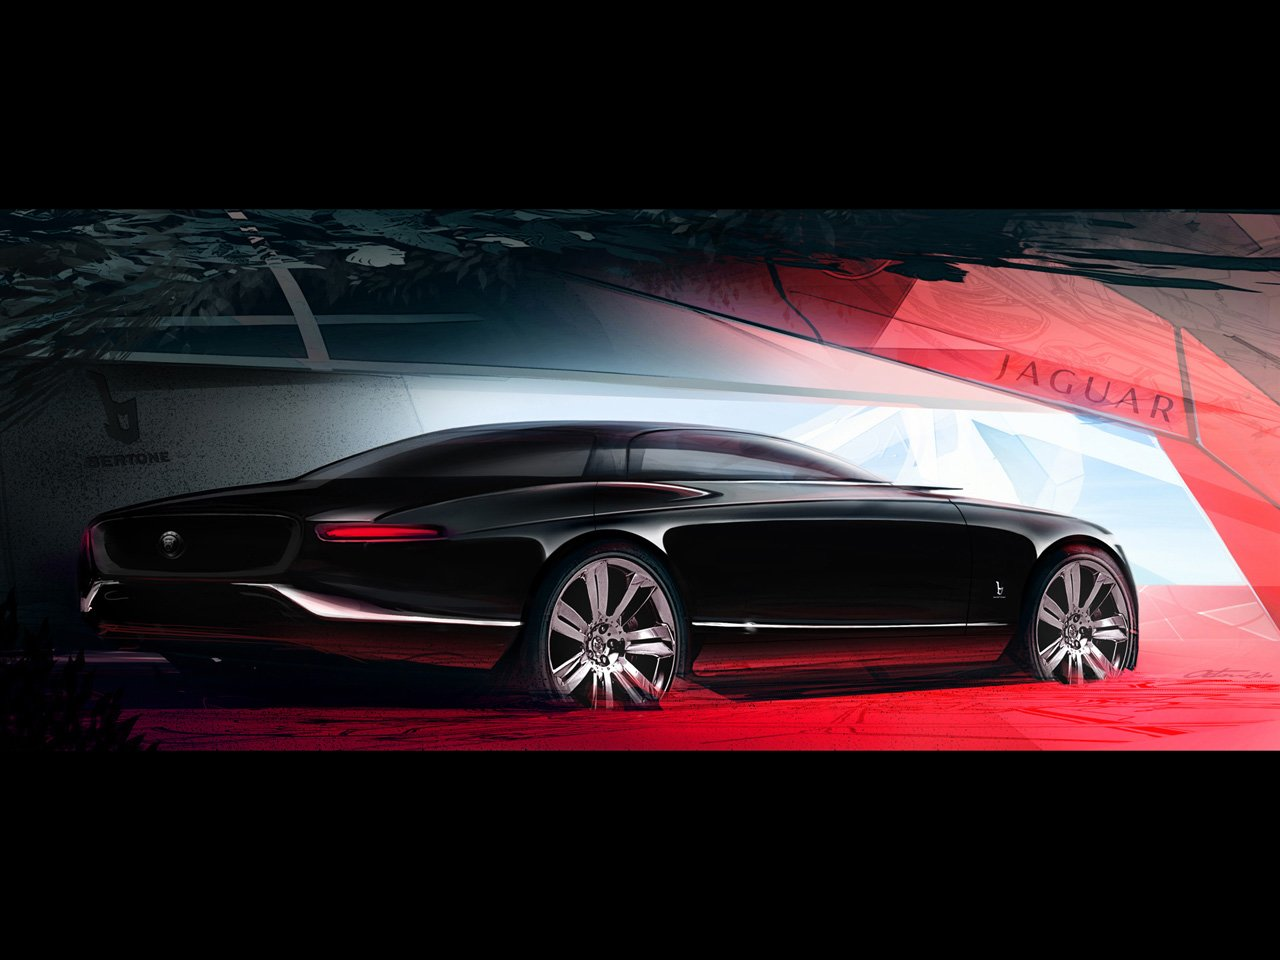 Latest Bertone Jaguar B99 Concept 2011 The Car Club Free Download